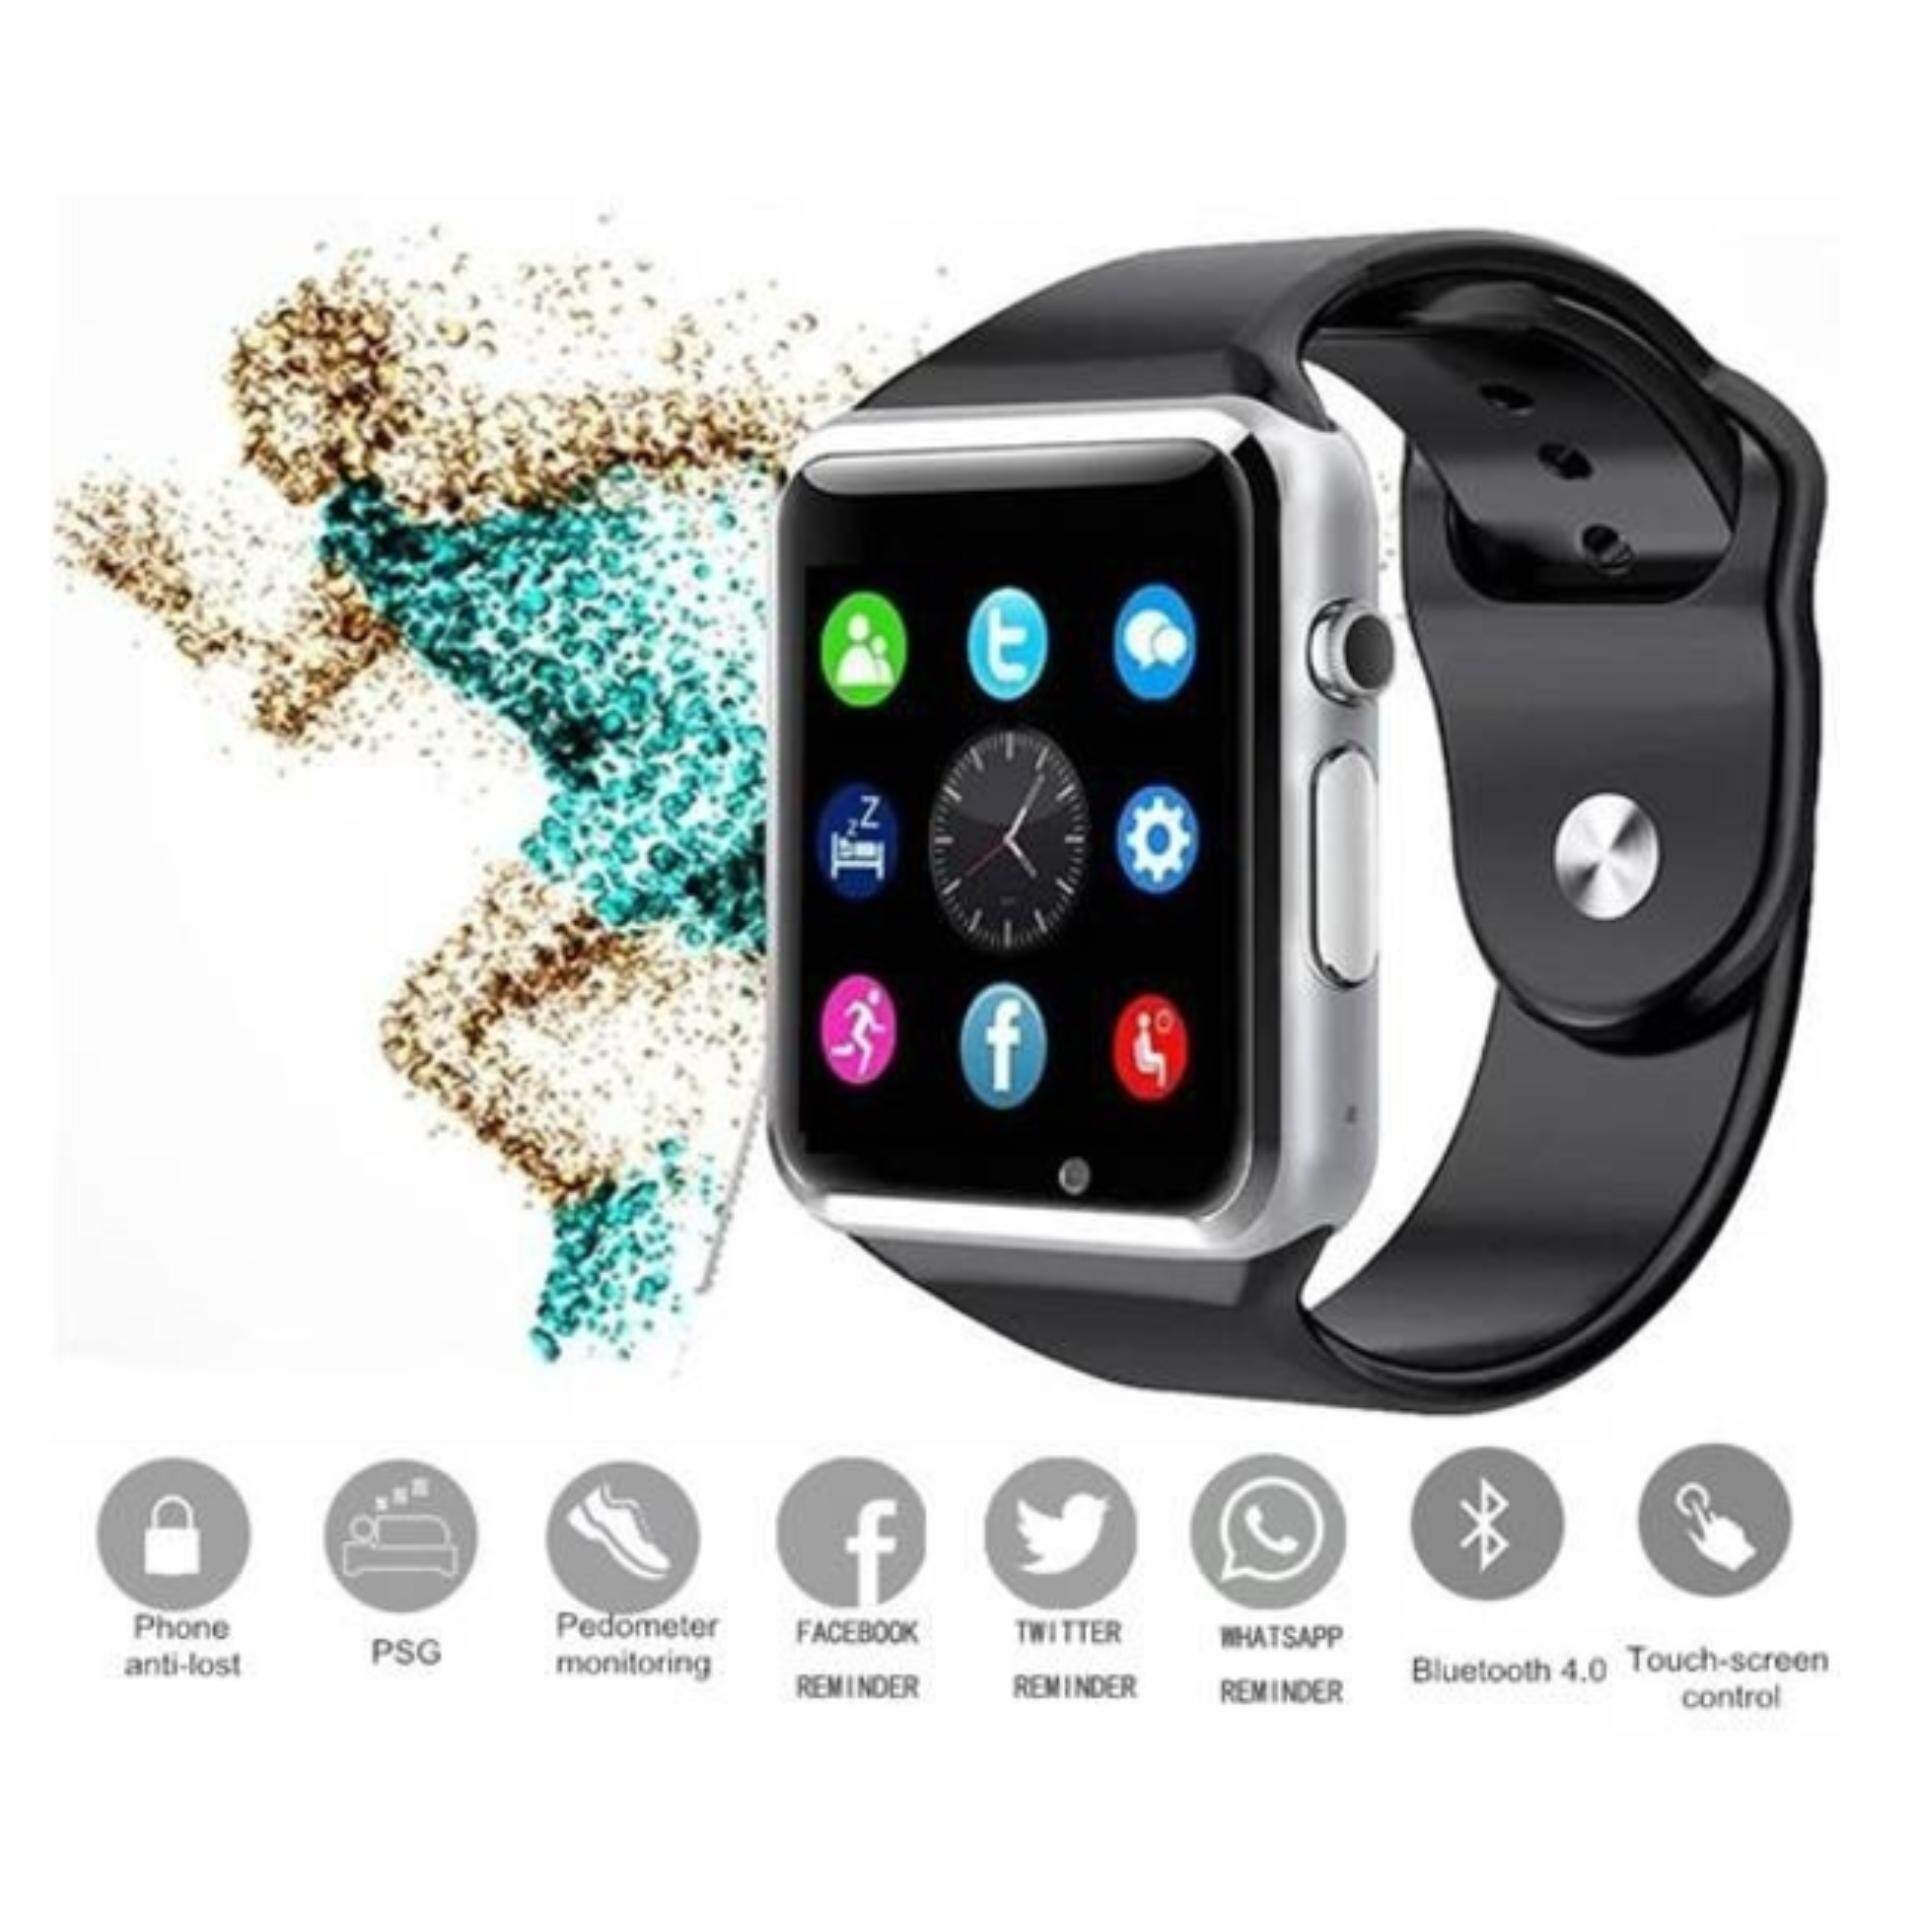 yep watches right i national just wireless iphone popular isn are series more watch two regional us with customers carriers big have pair s hero x been for lte the apple offering that service anymore phone t of